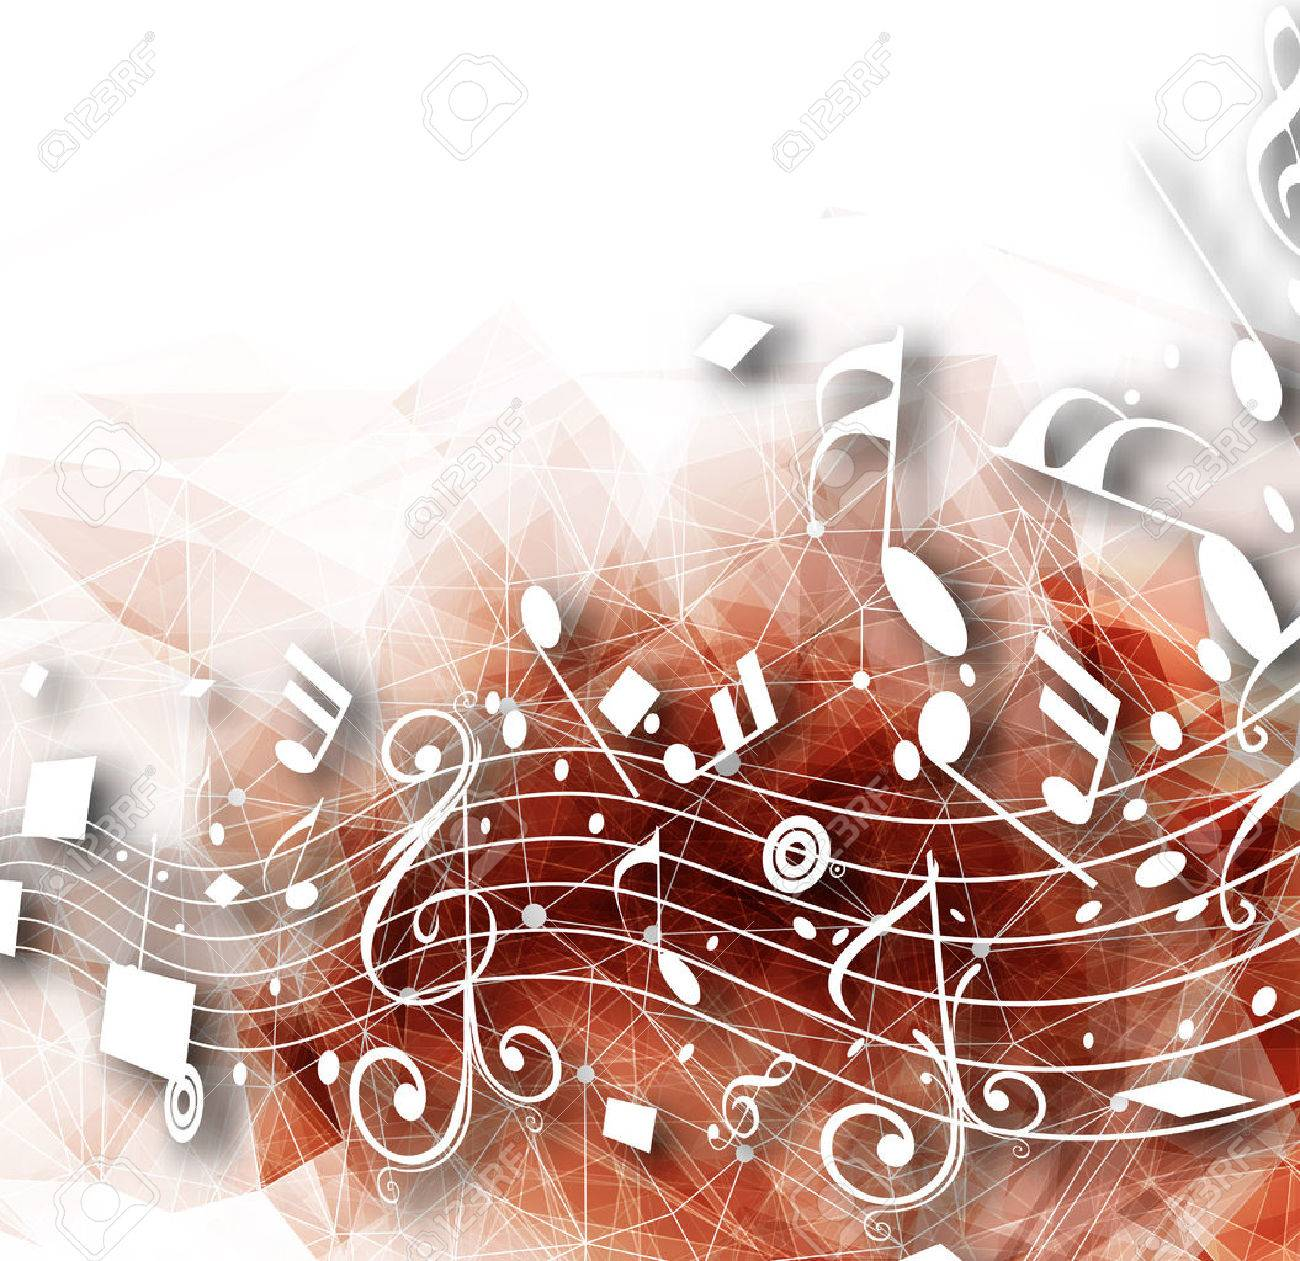 Download 570 Background Abstract Musical Notes HD Gratis